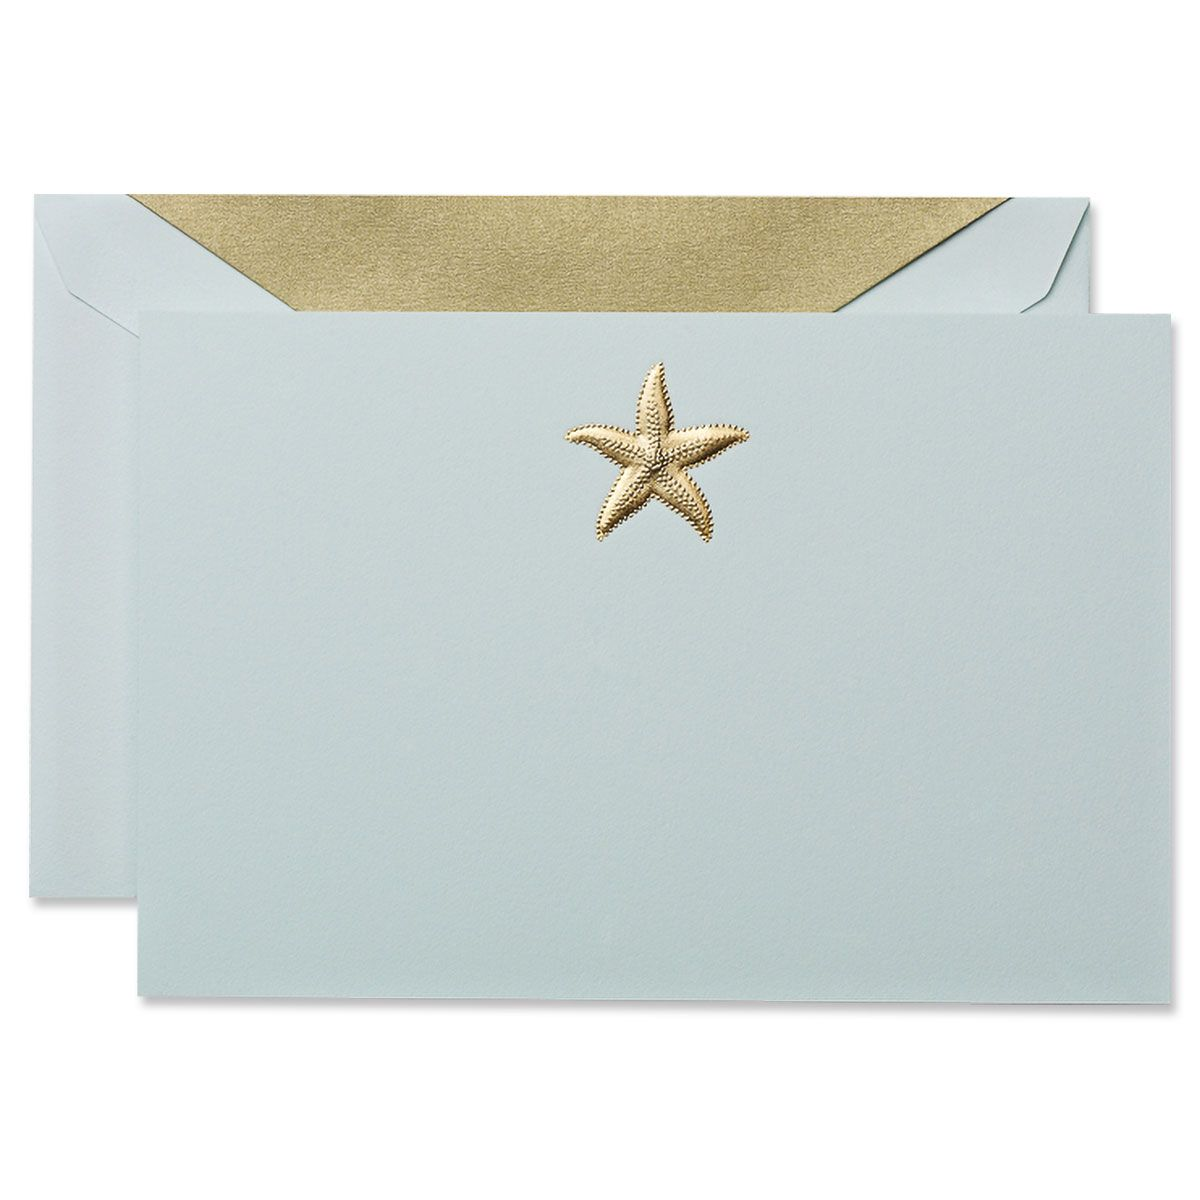 Engraved Starfish Correspondence Cards Boxed Set